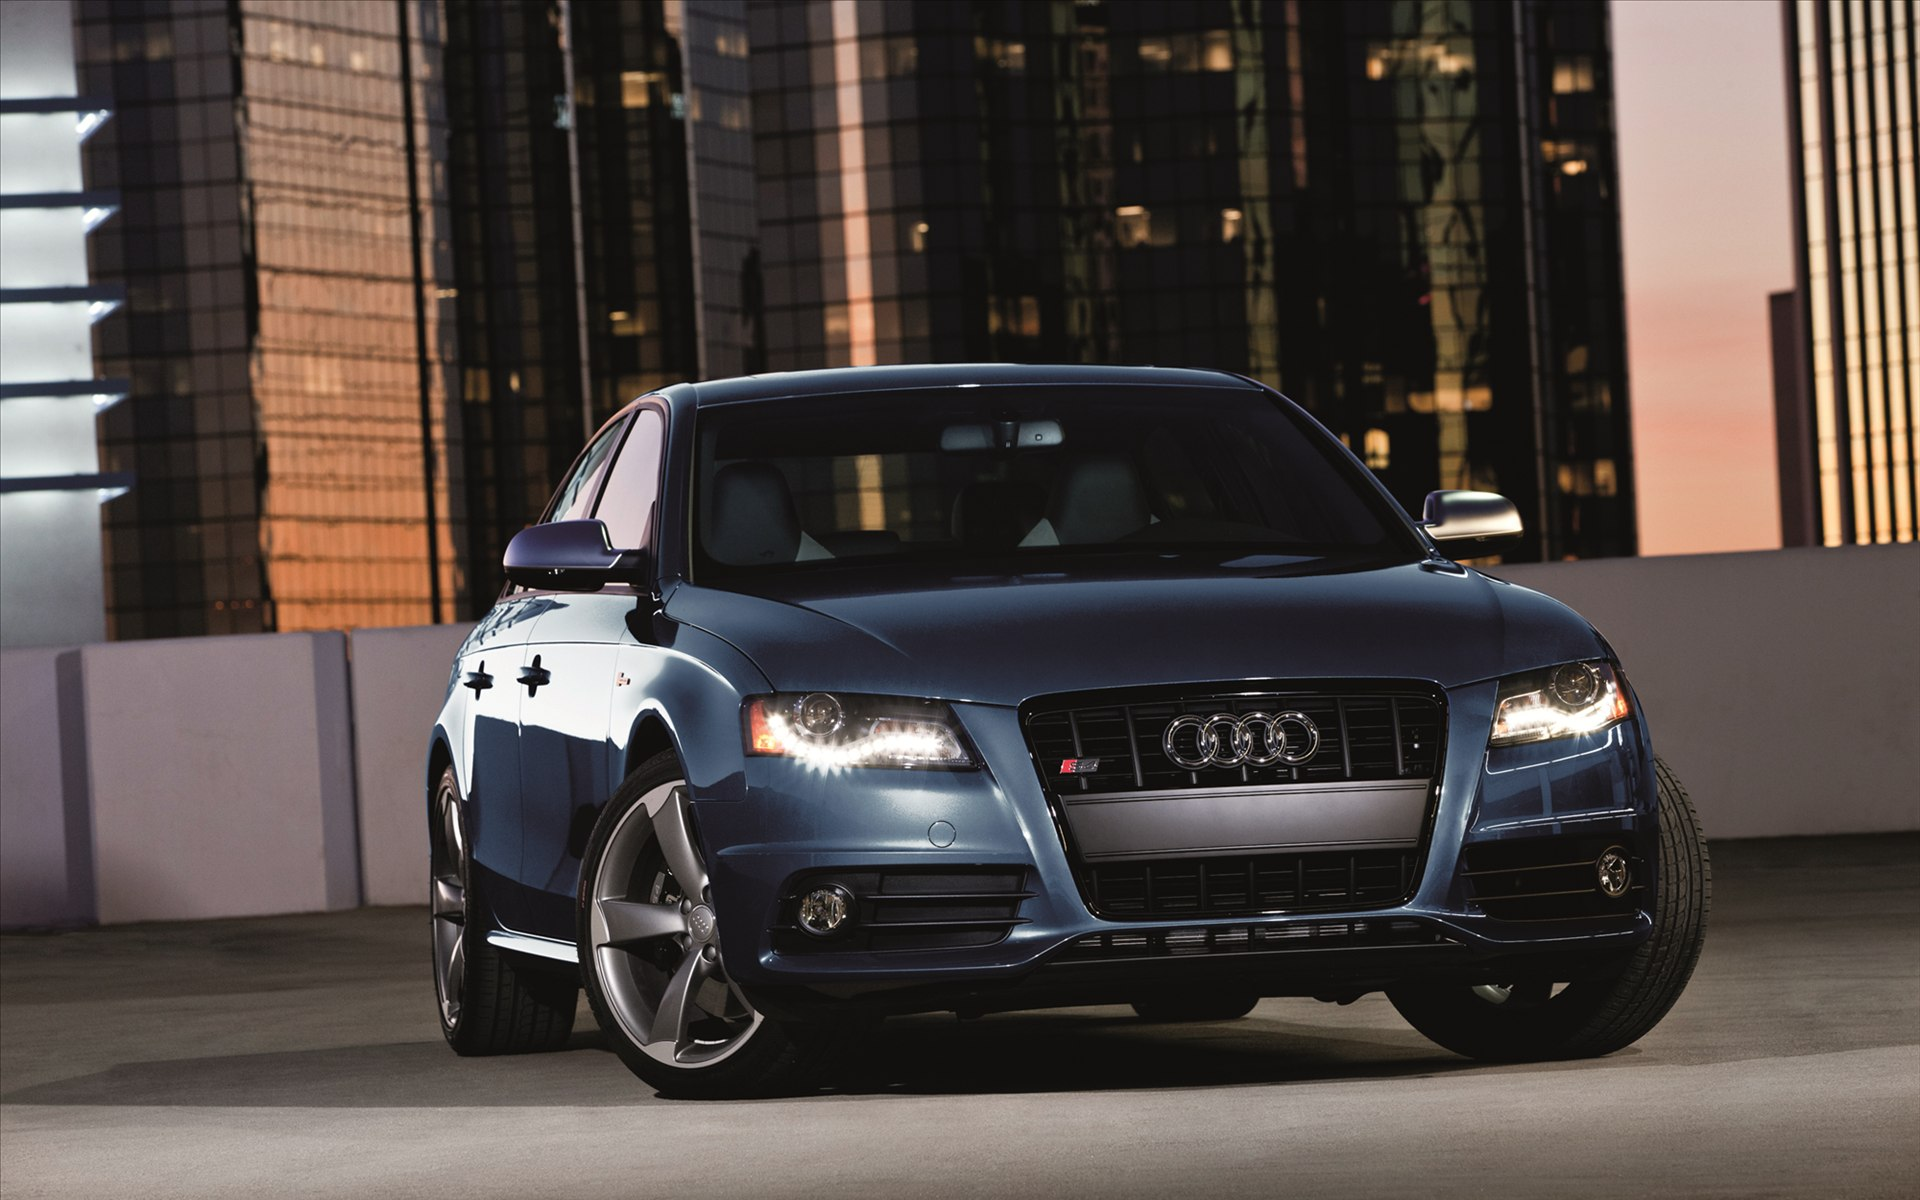 Audi S4 TheWallpapers Desktop Wallpapers for HD Widescreen and 1920x1200